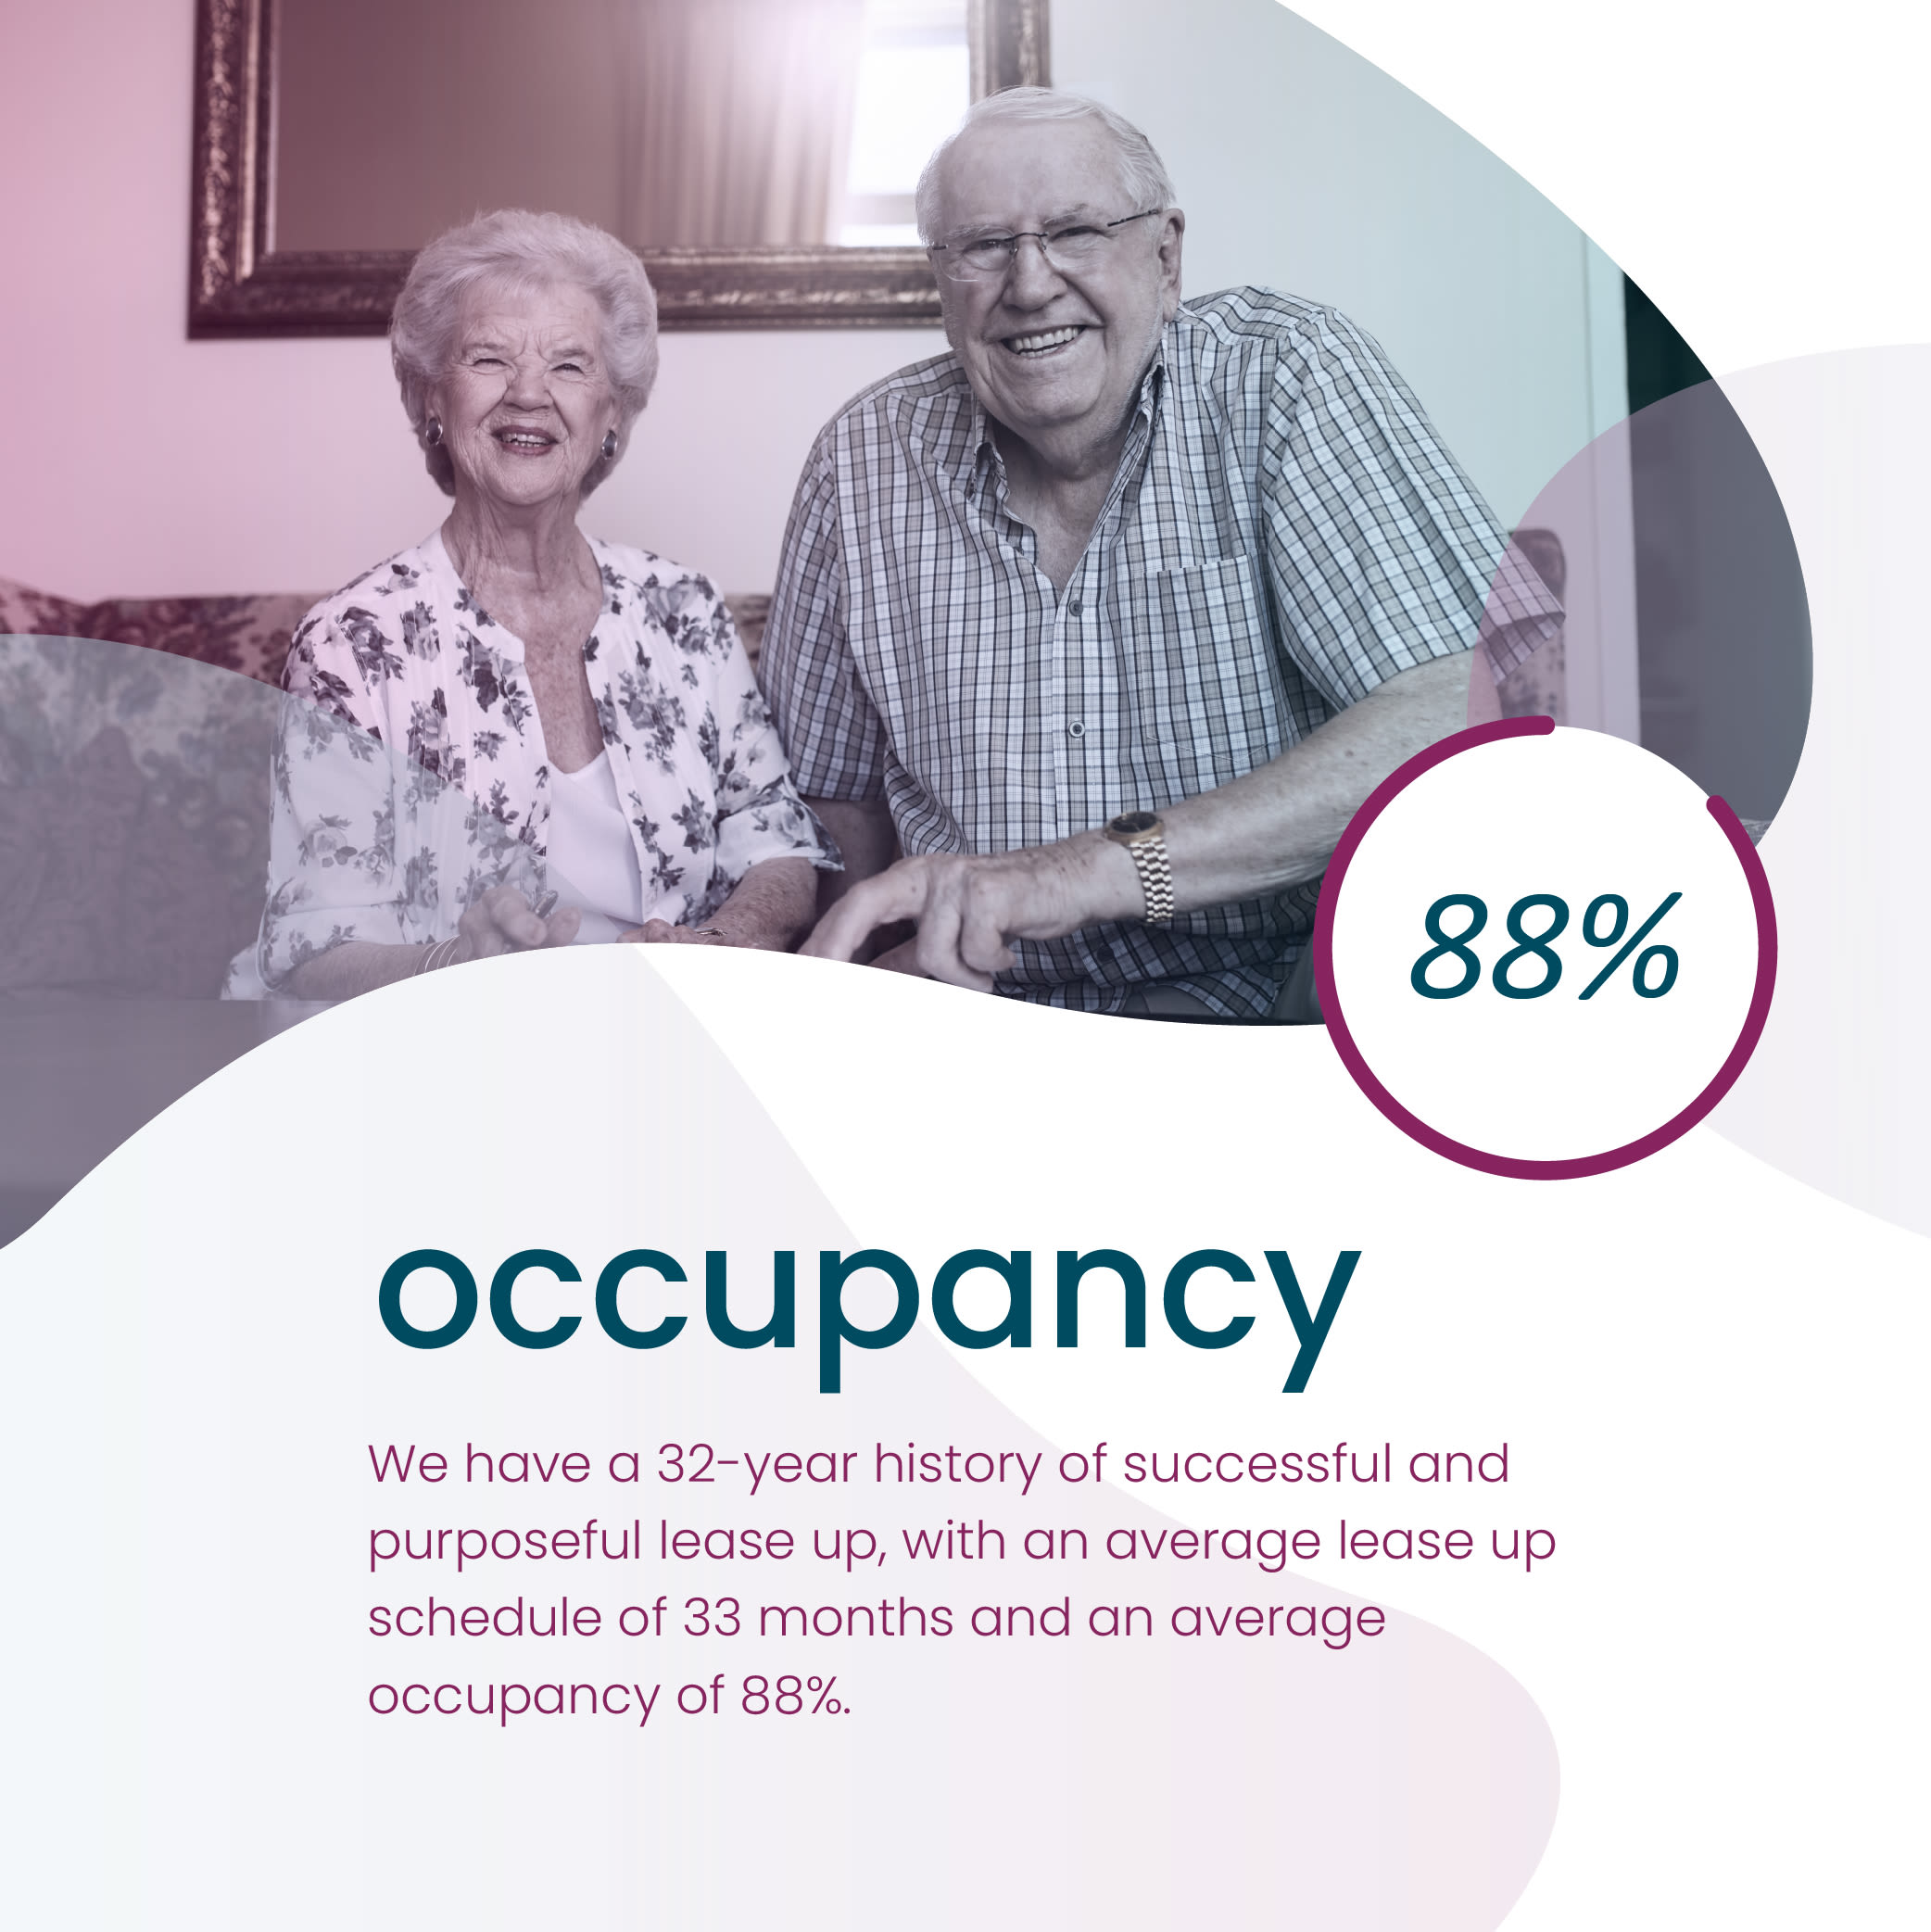 Our occupancy approach at Hearth Management